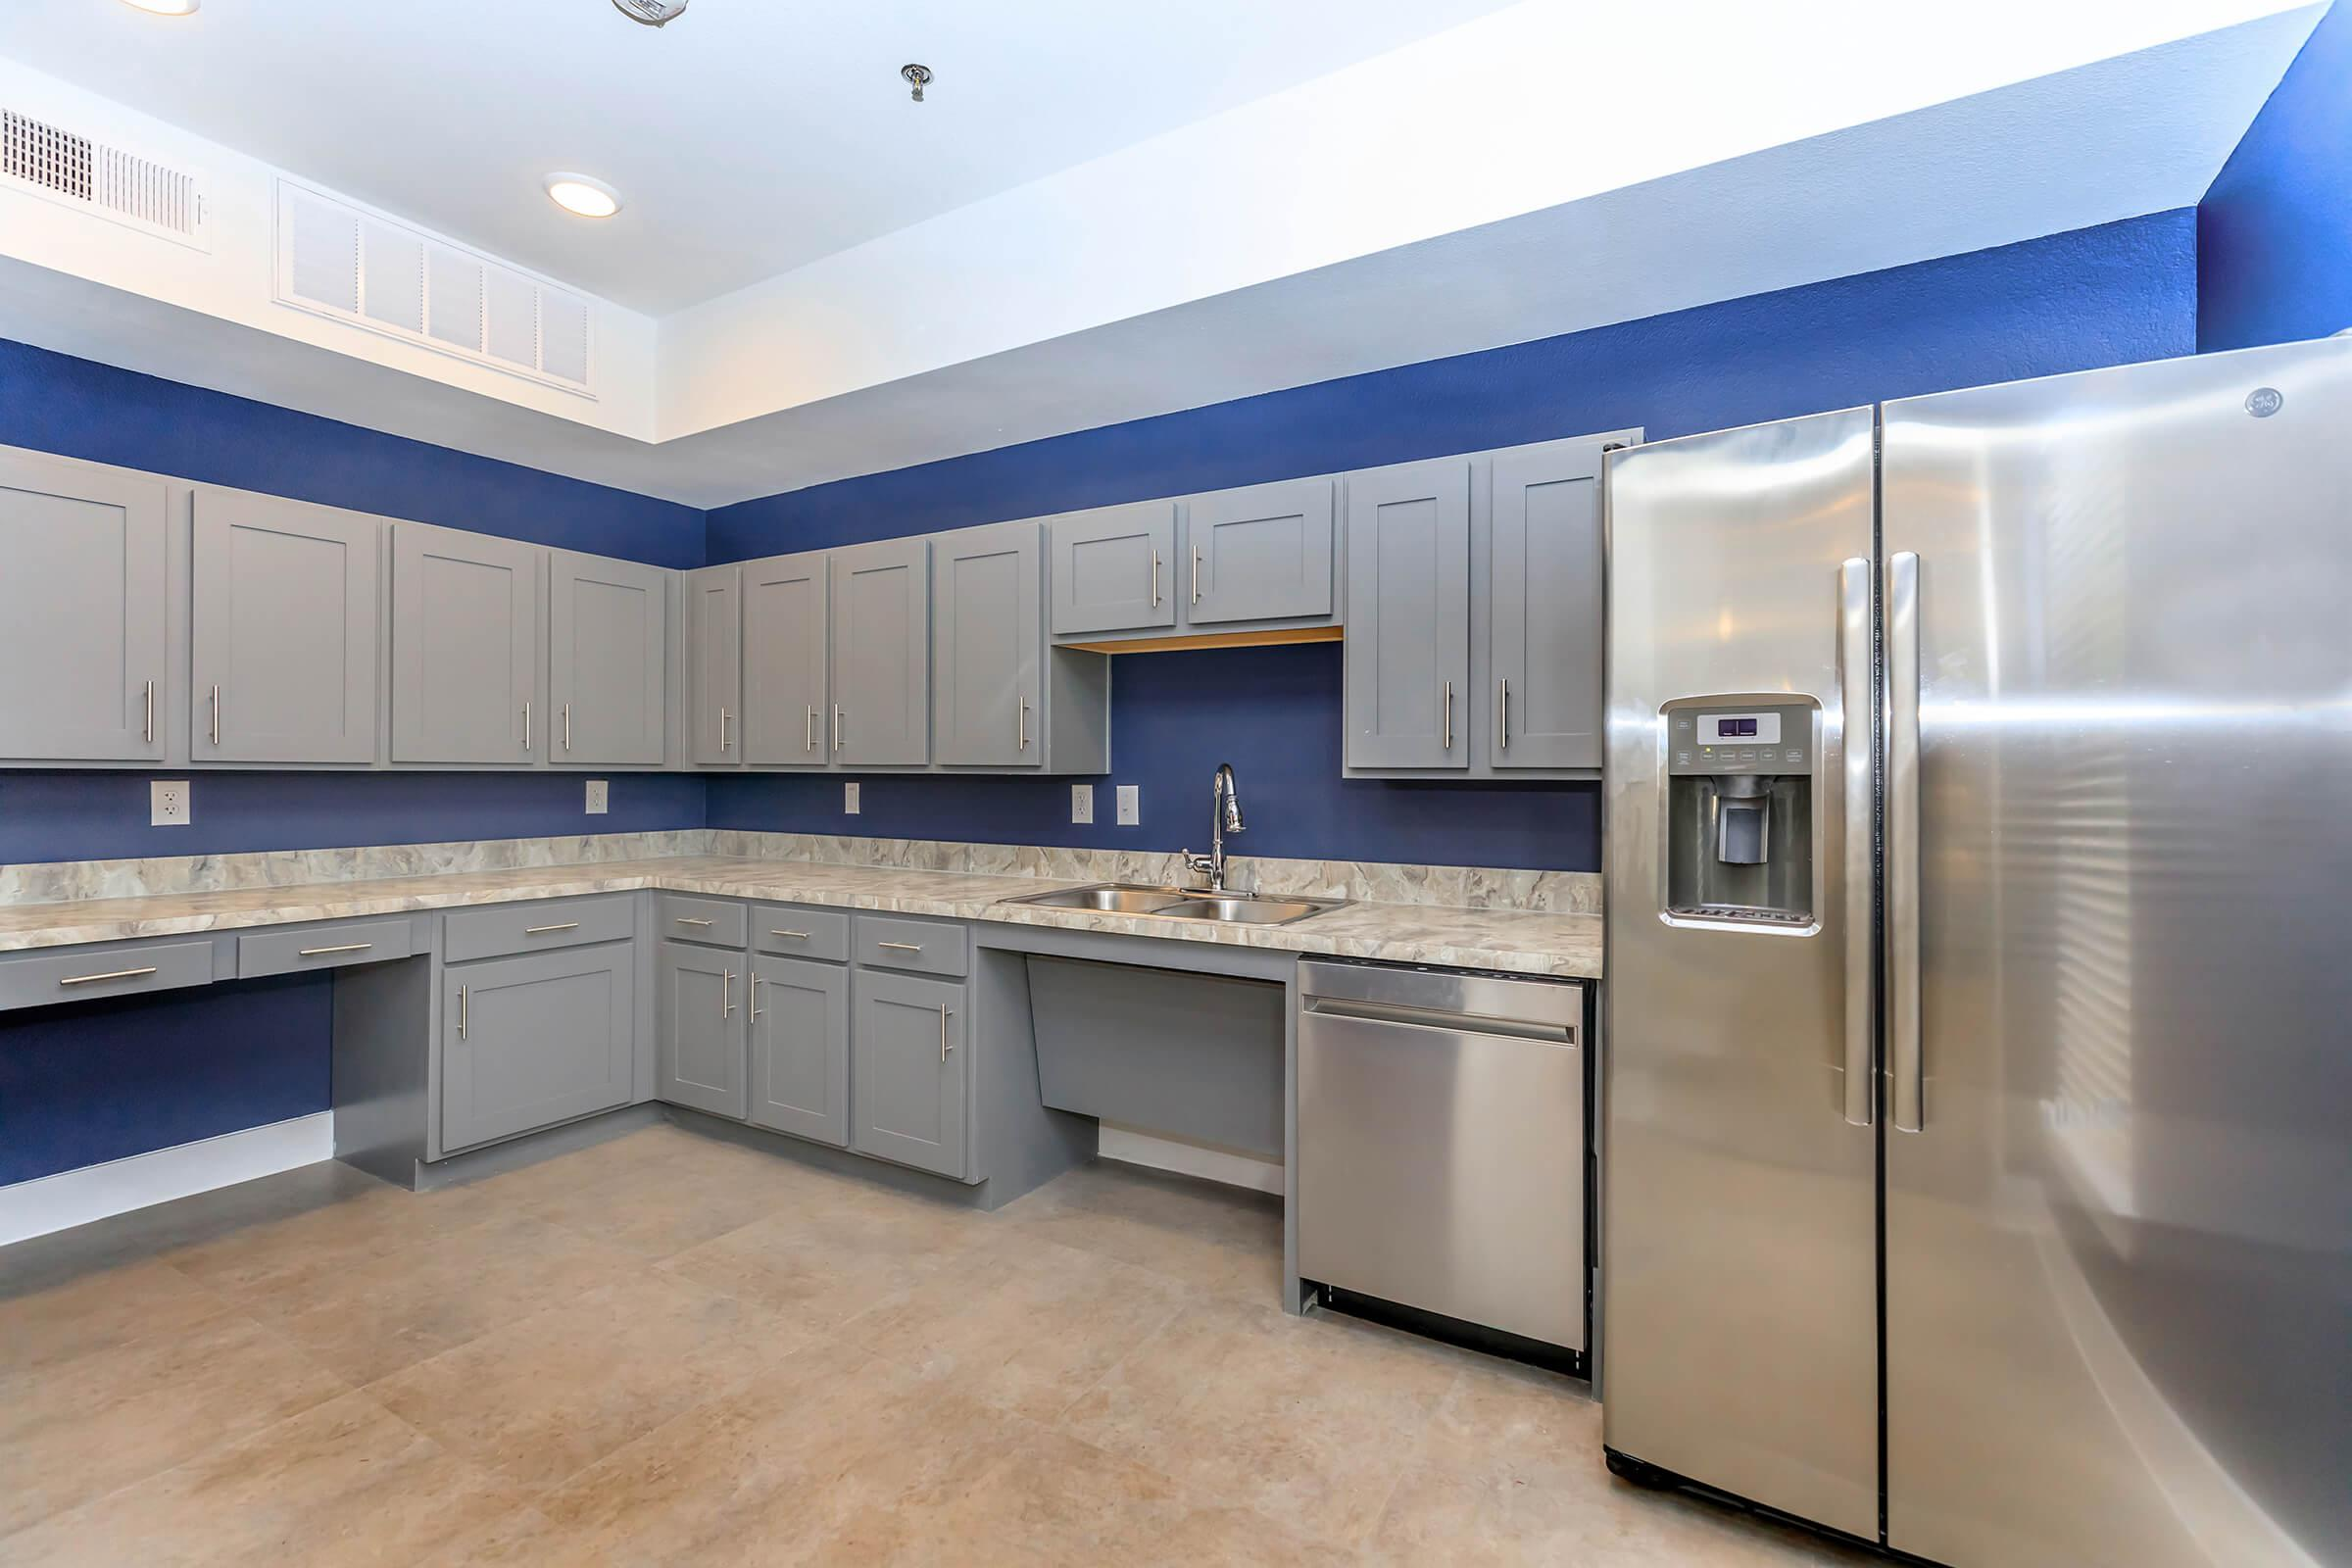 a large commercial kitchen with a blue background